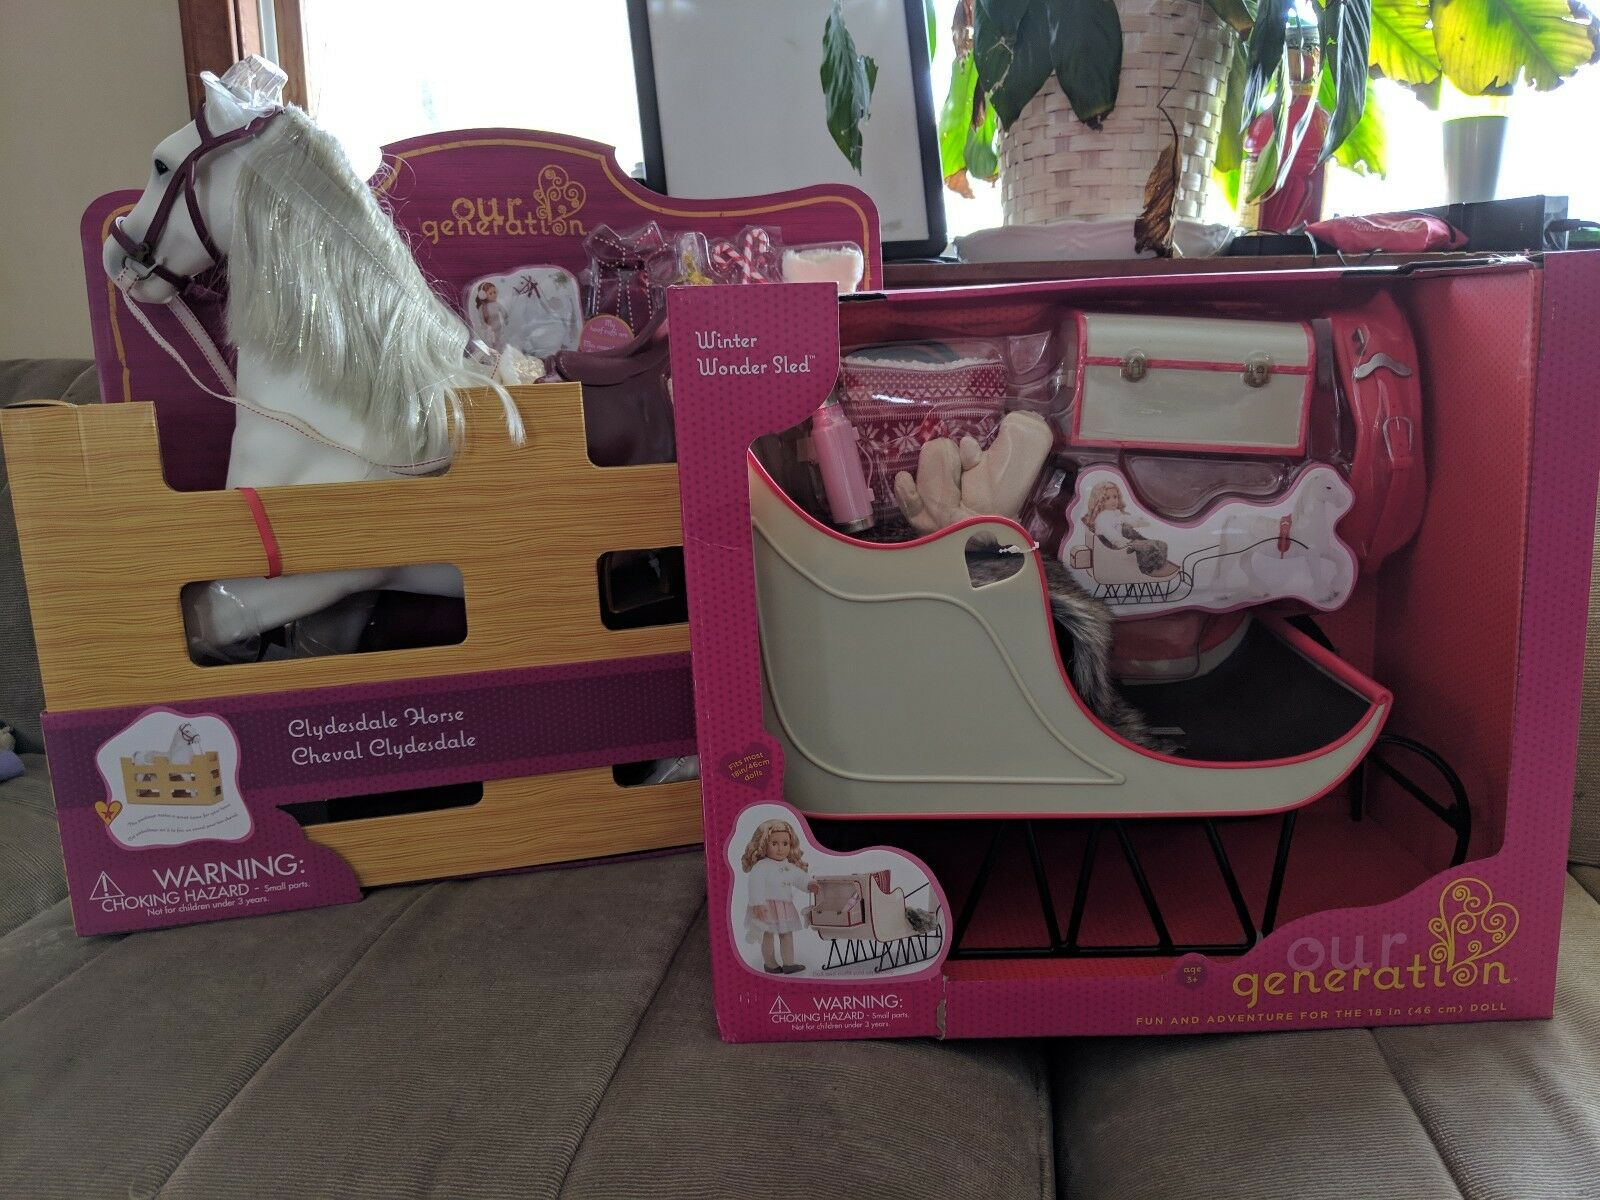 Our Generation Pferd AND Sleigh NIB Fits American Girl